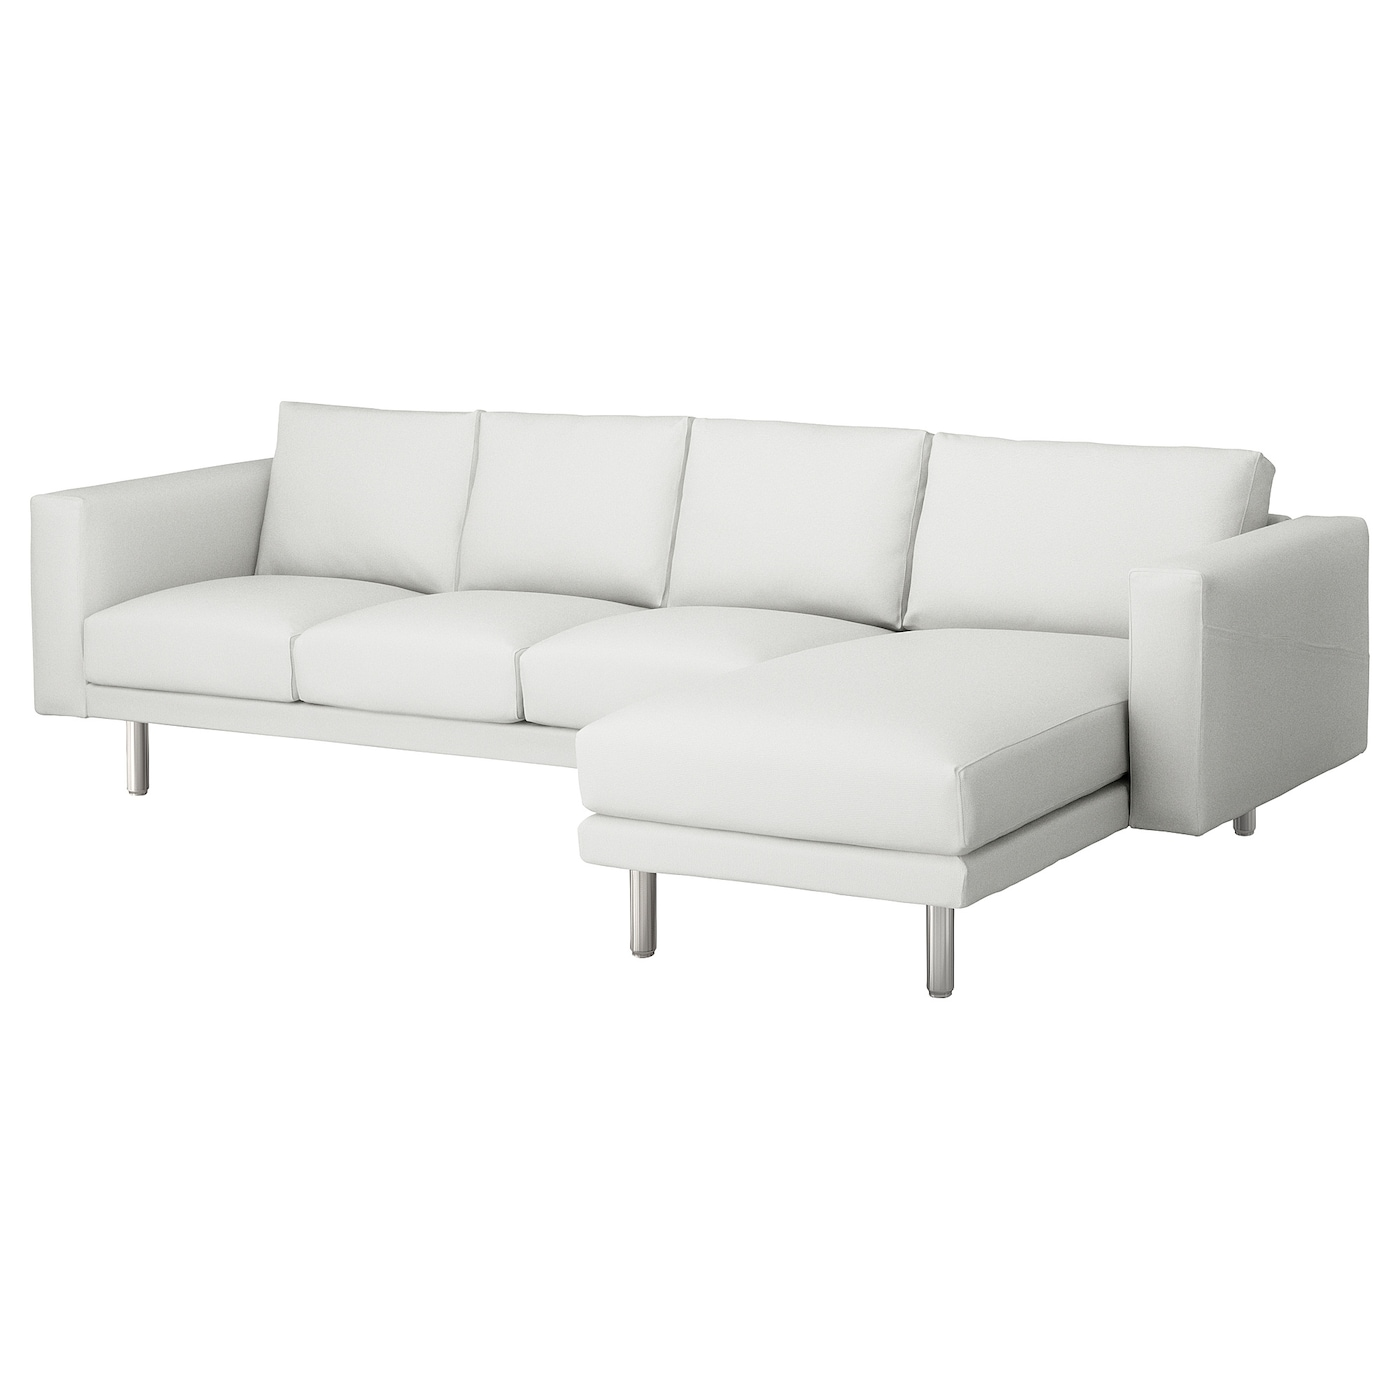 Norsborg three seat sofa and chaise longue finnsta white - Chaise longue jardin ikea ...